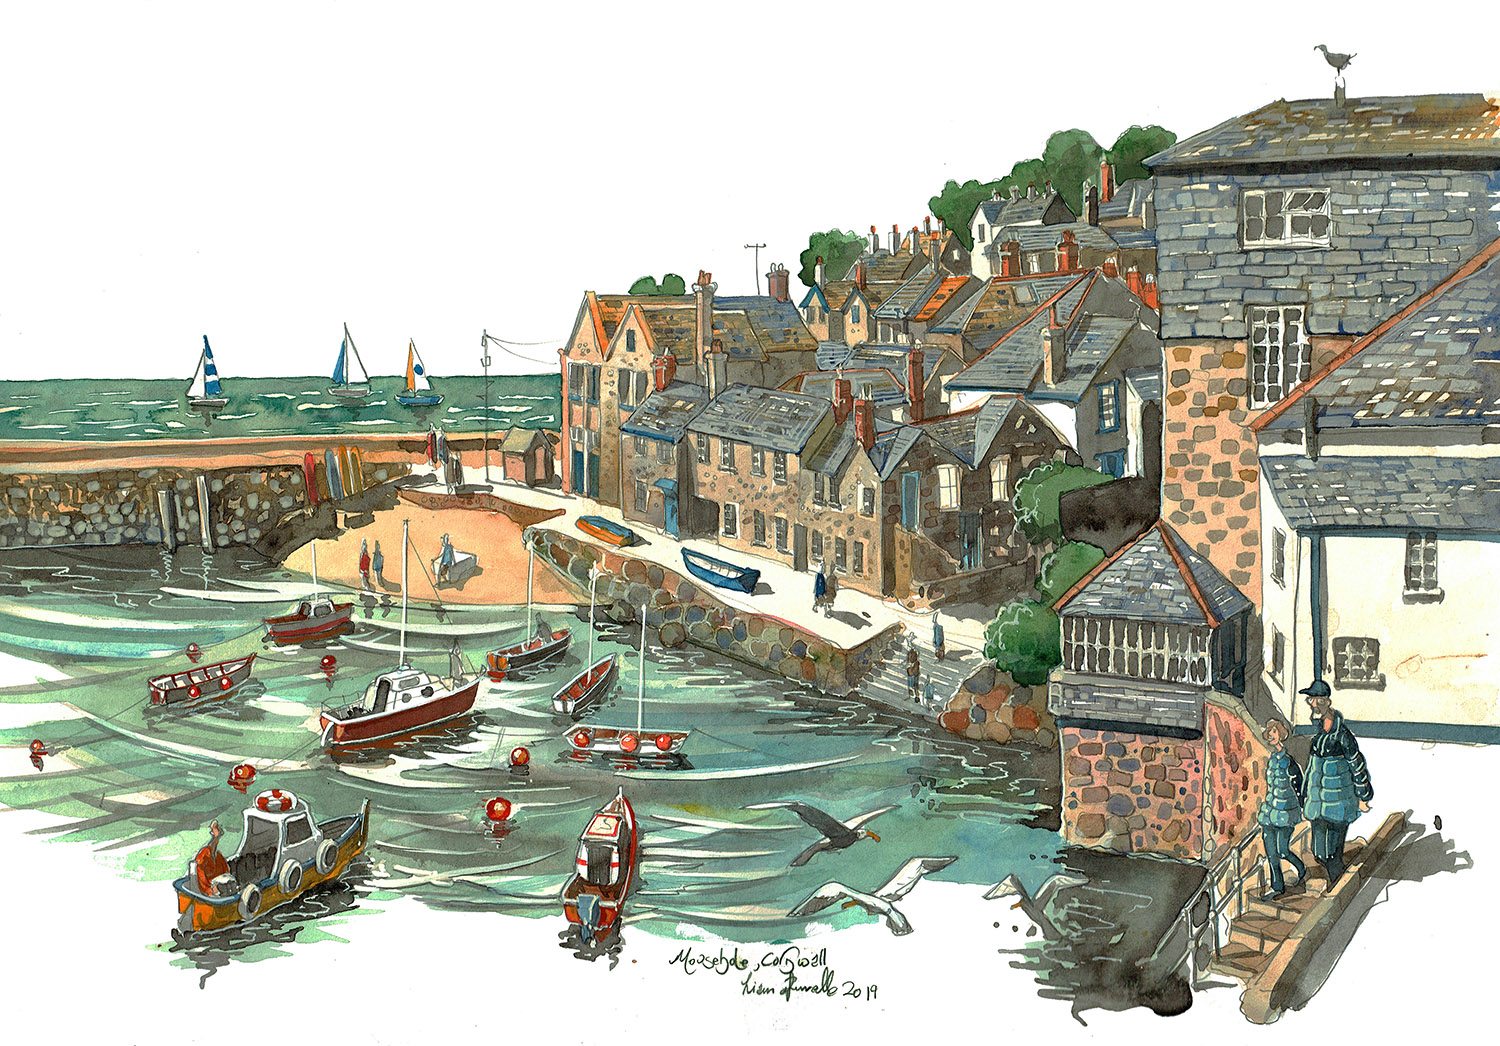 The New Craftsman Gallery | St. Ives | Cornwall | Gallery